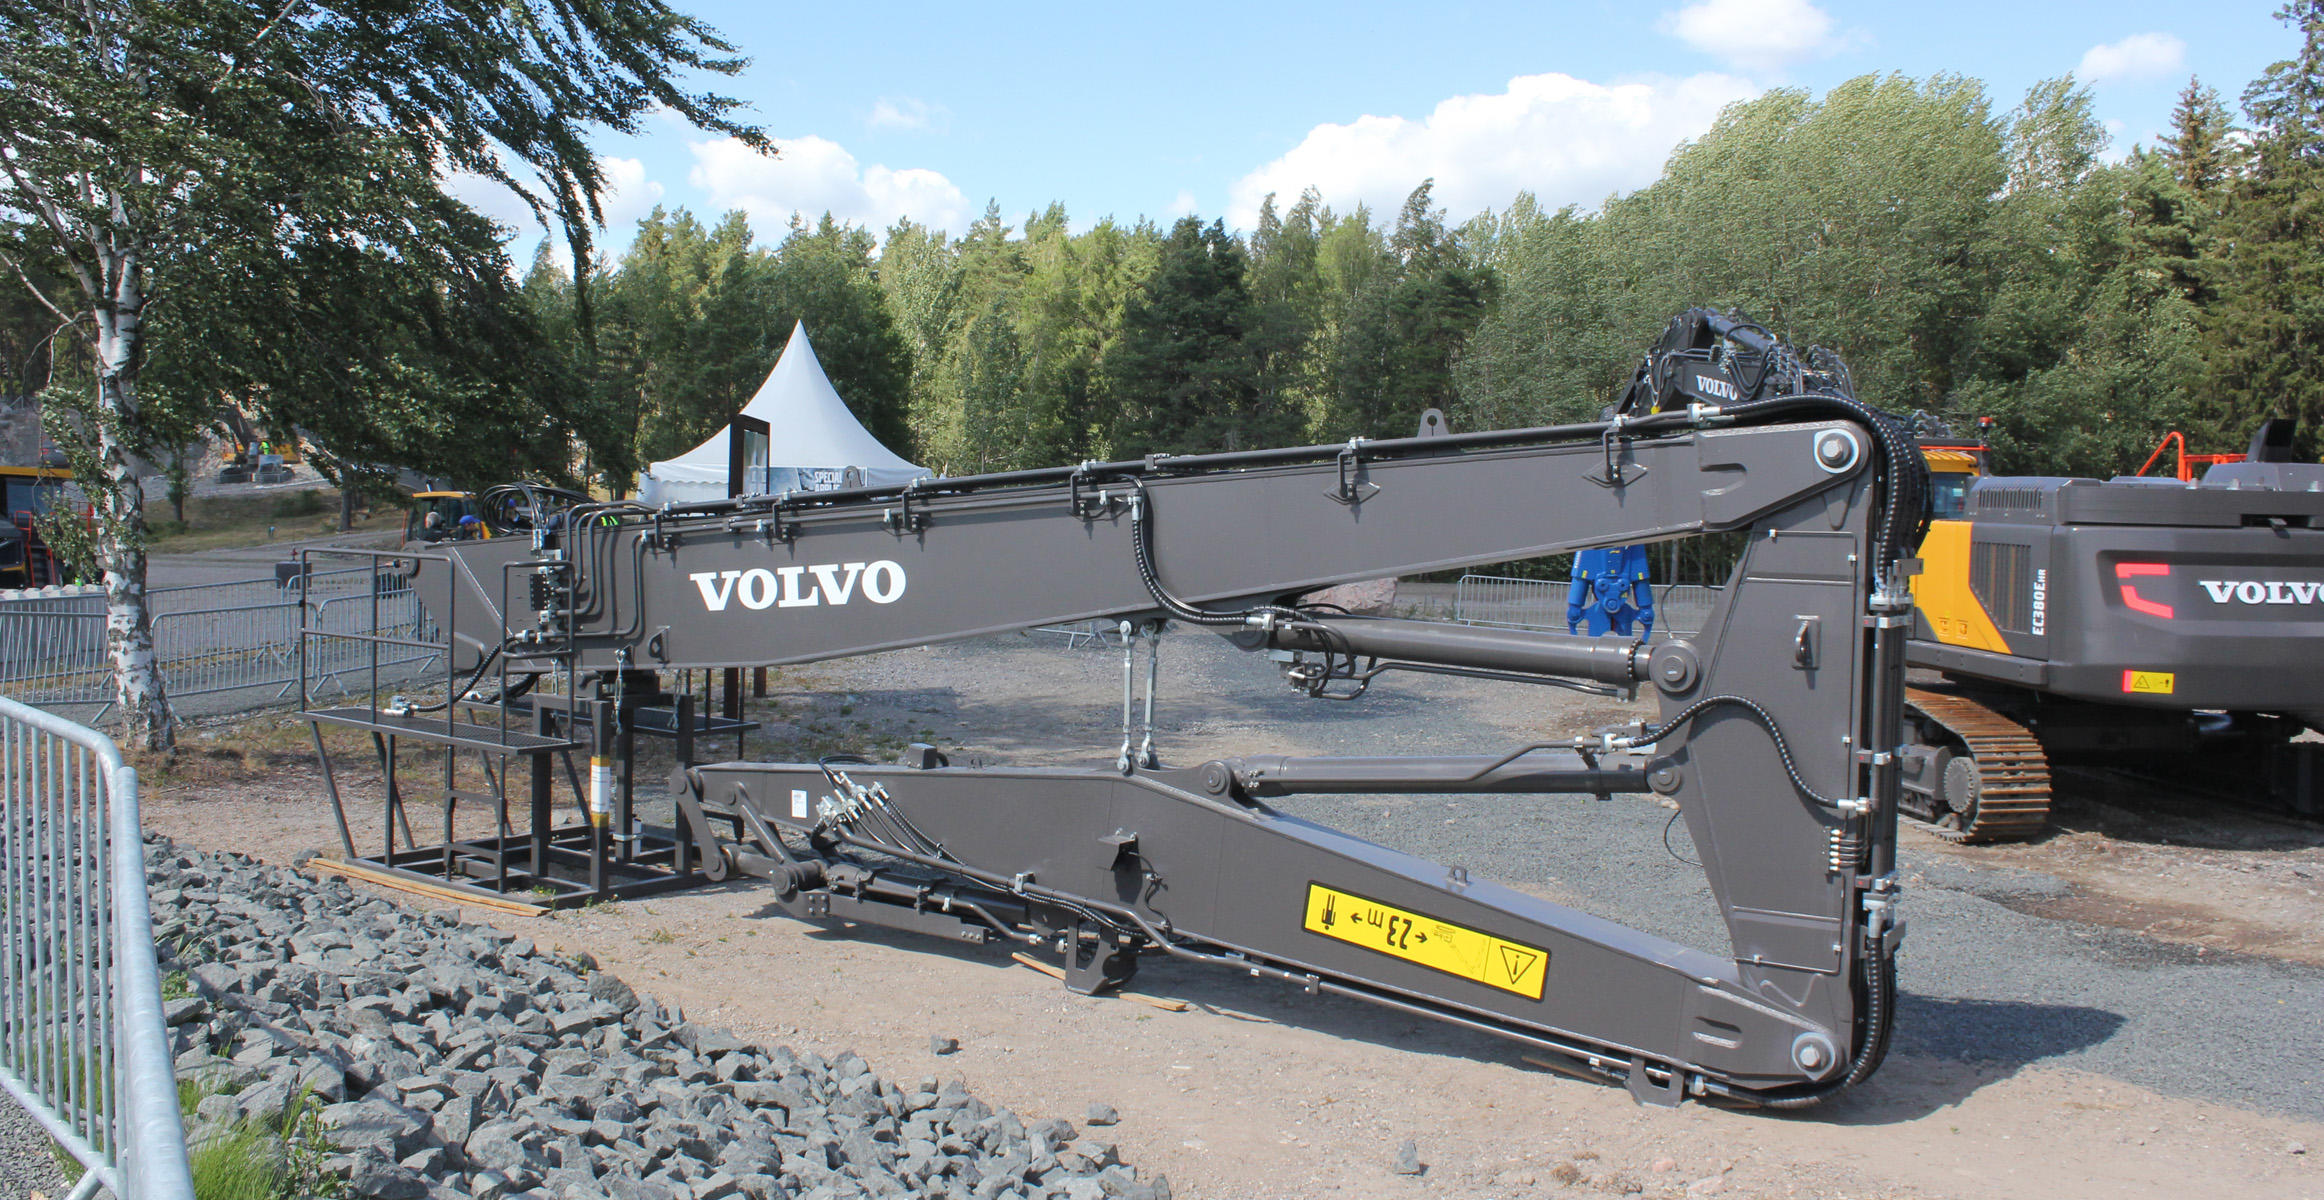 Volvo EC380E HR multi demolition boom at the Volvo Customer Center in Eskilstuna, Sweden